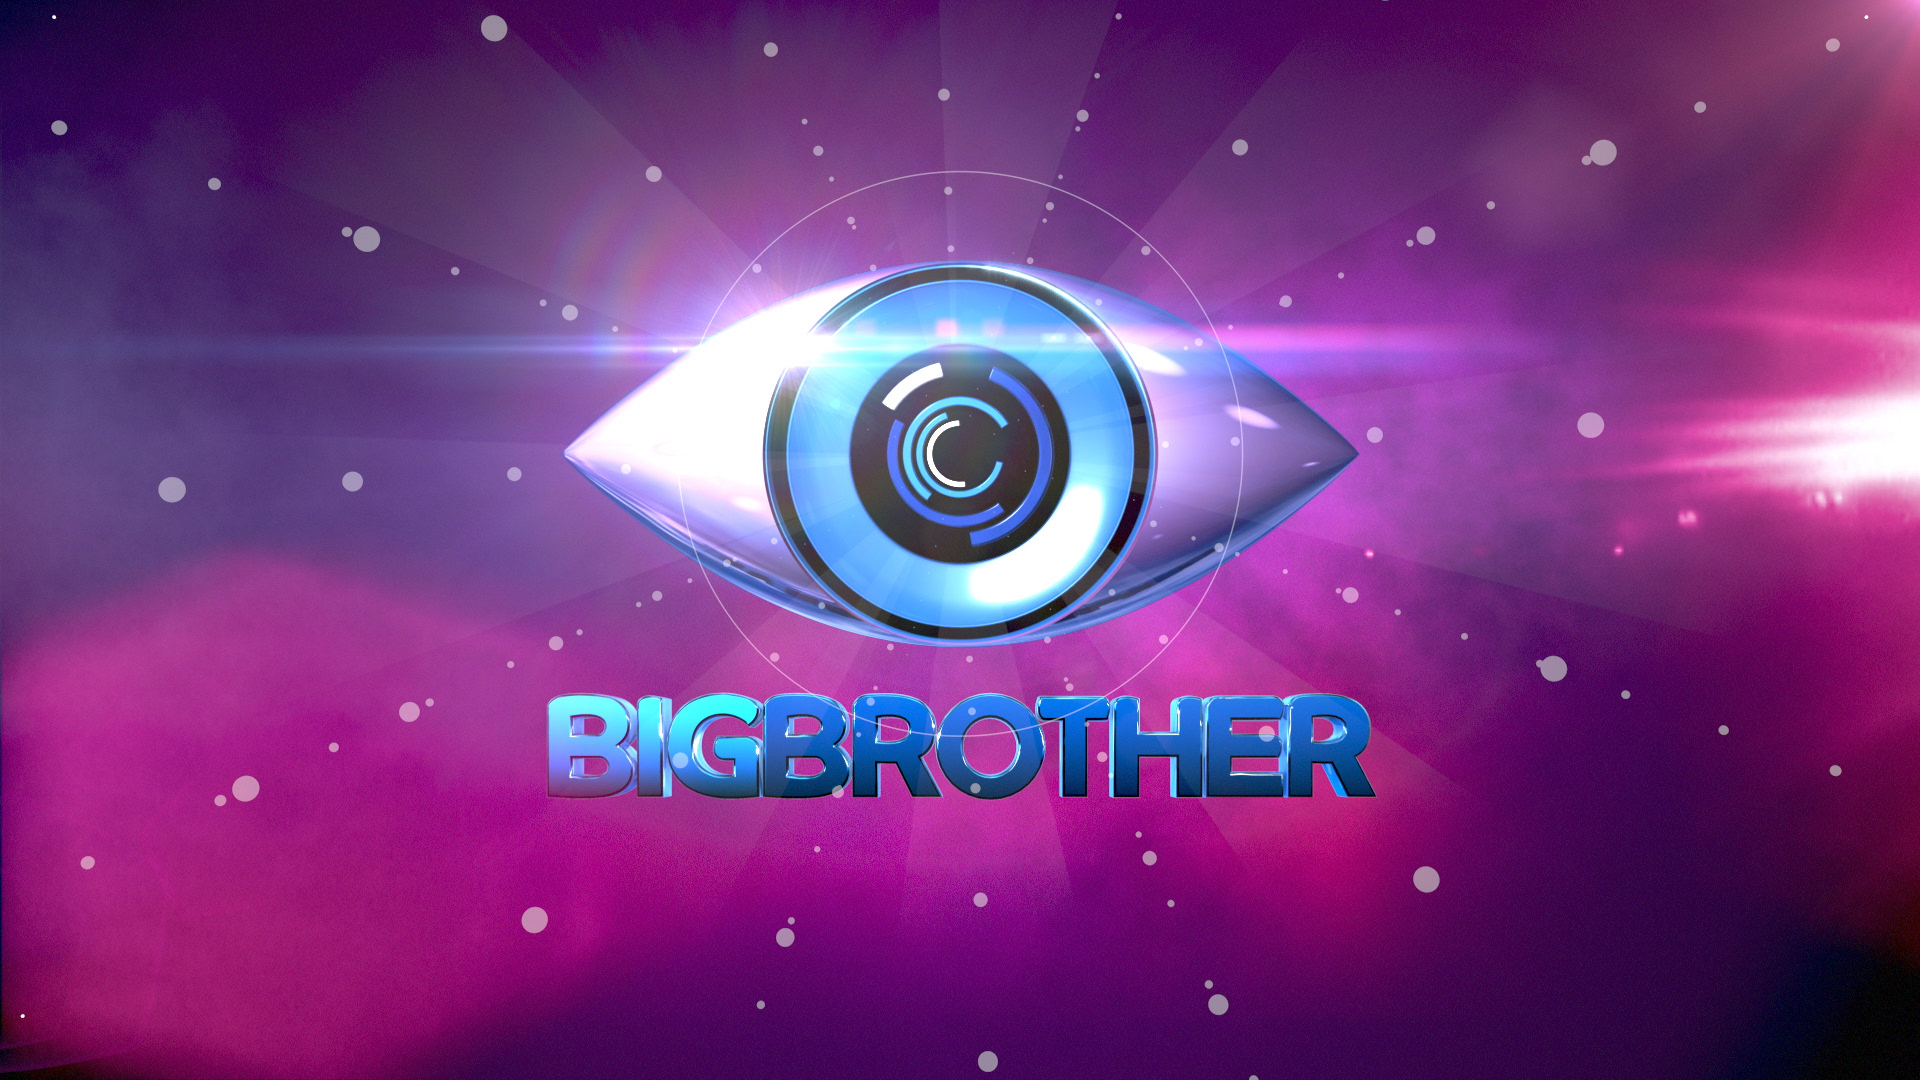 BIG_BROTHER_23.jpg